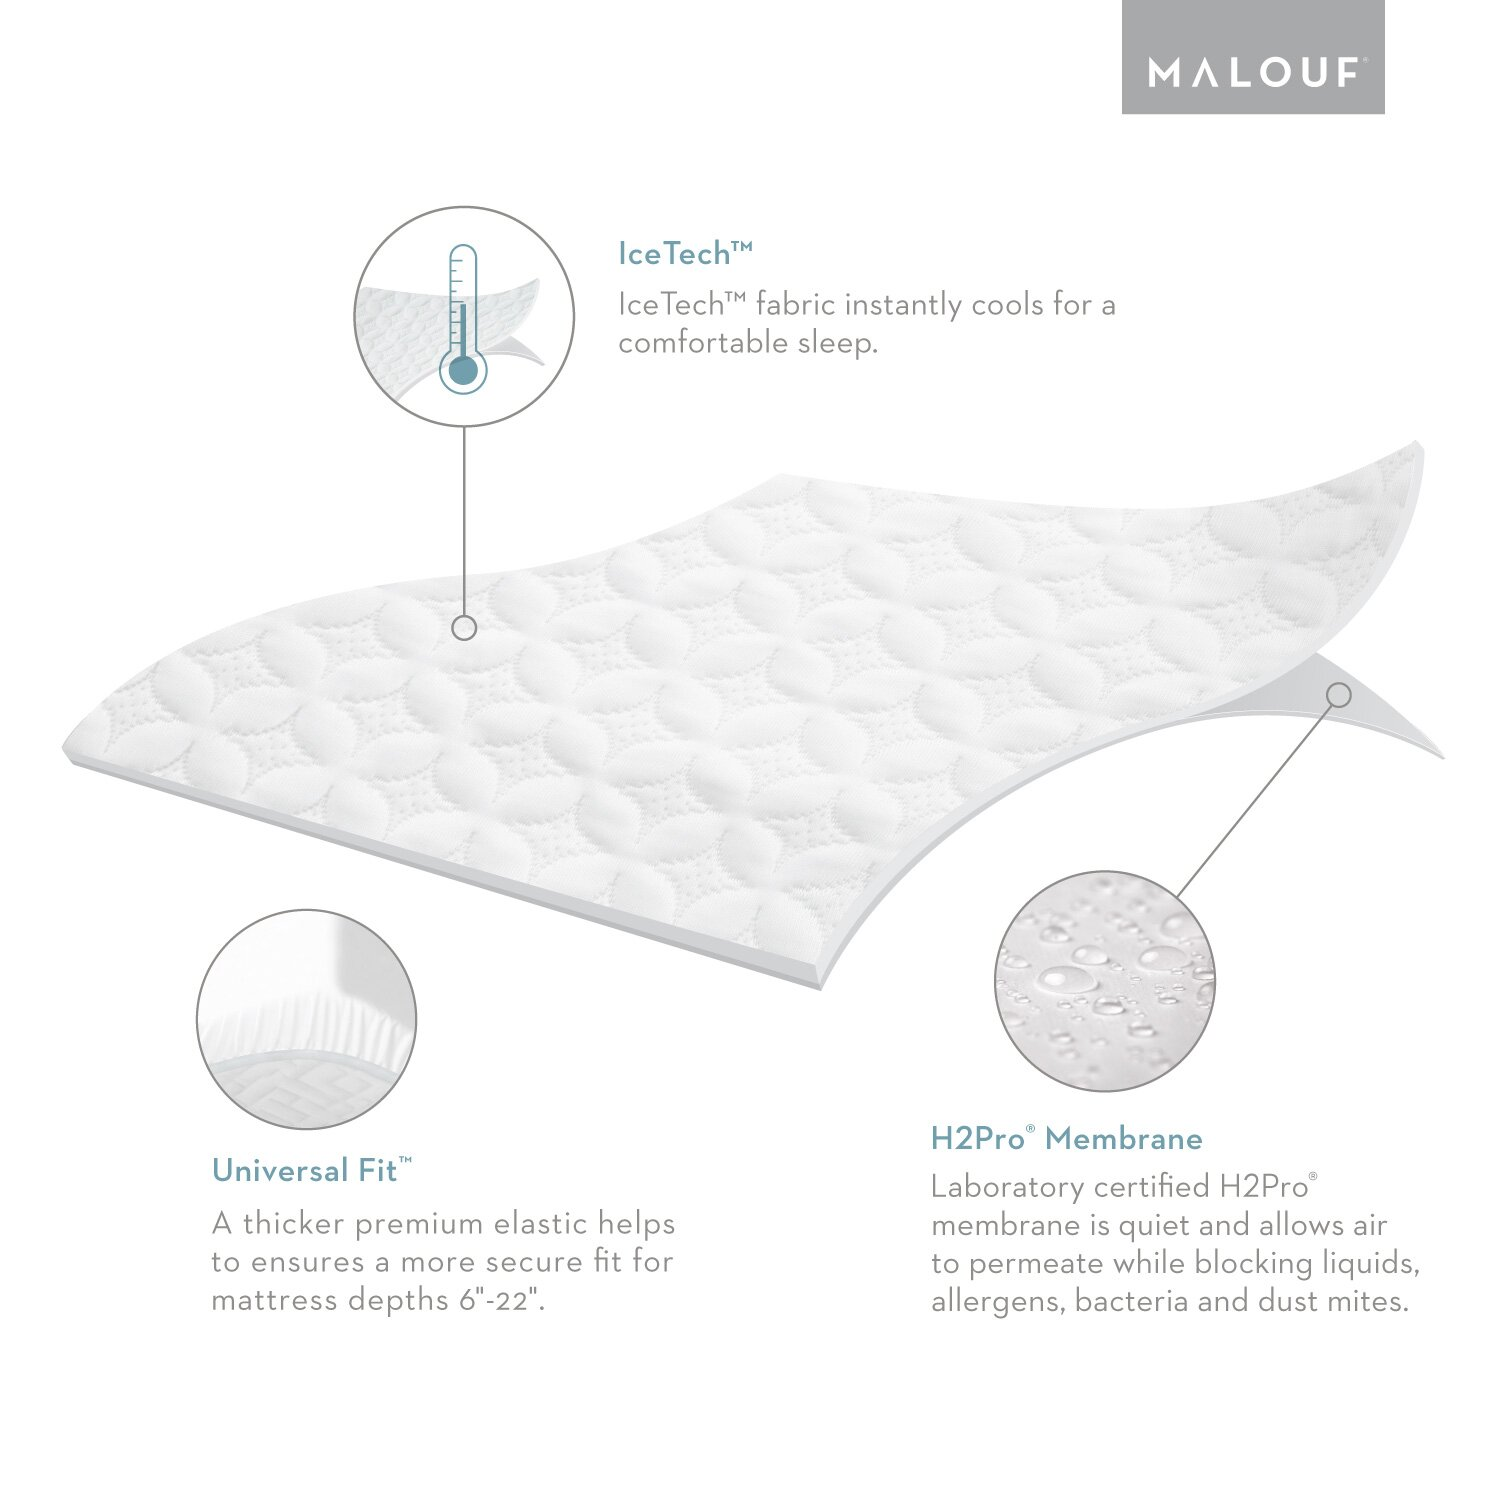 Malouf Five Sided Ice Tech Cooling Hypoallergenic